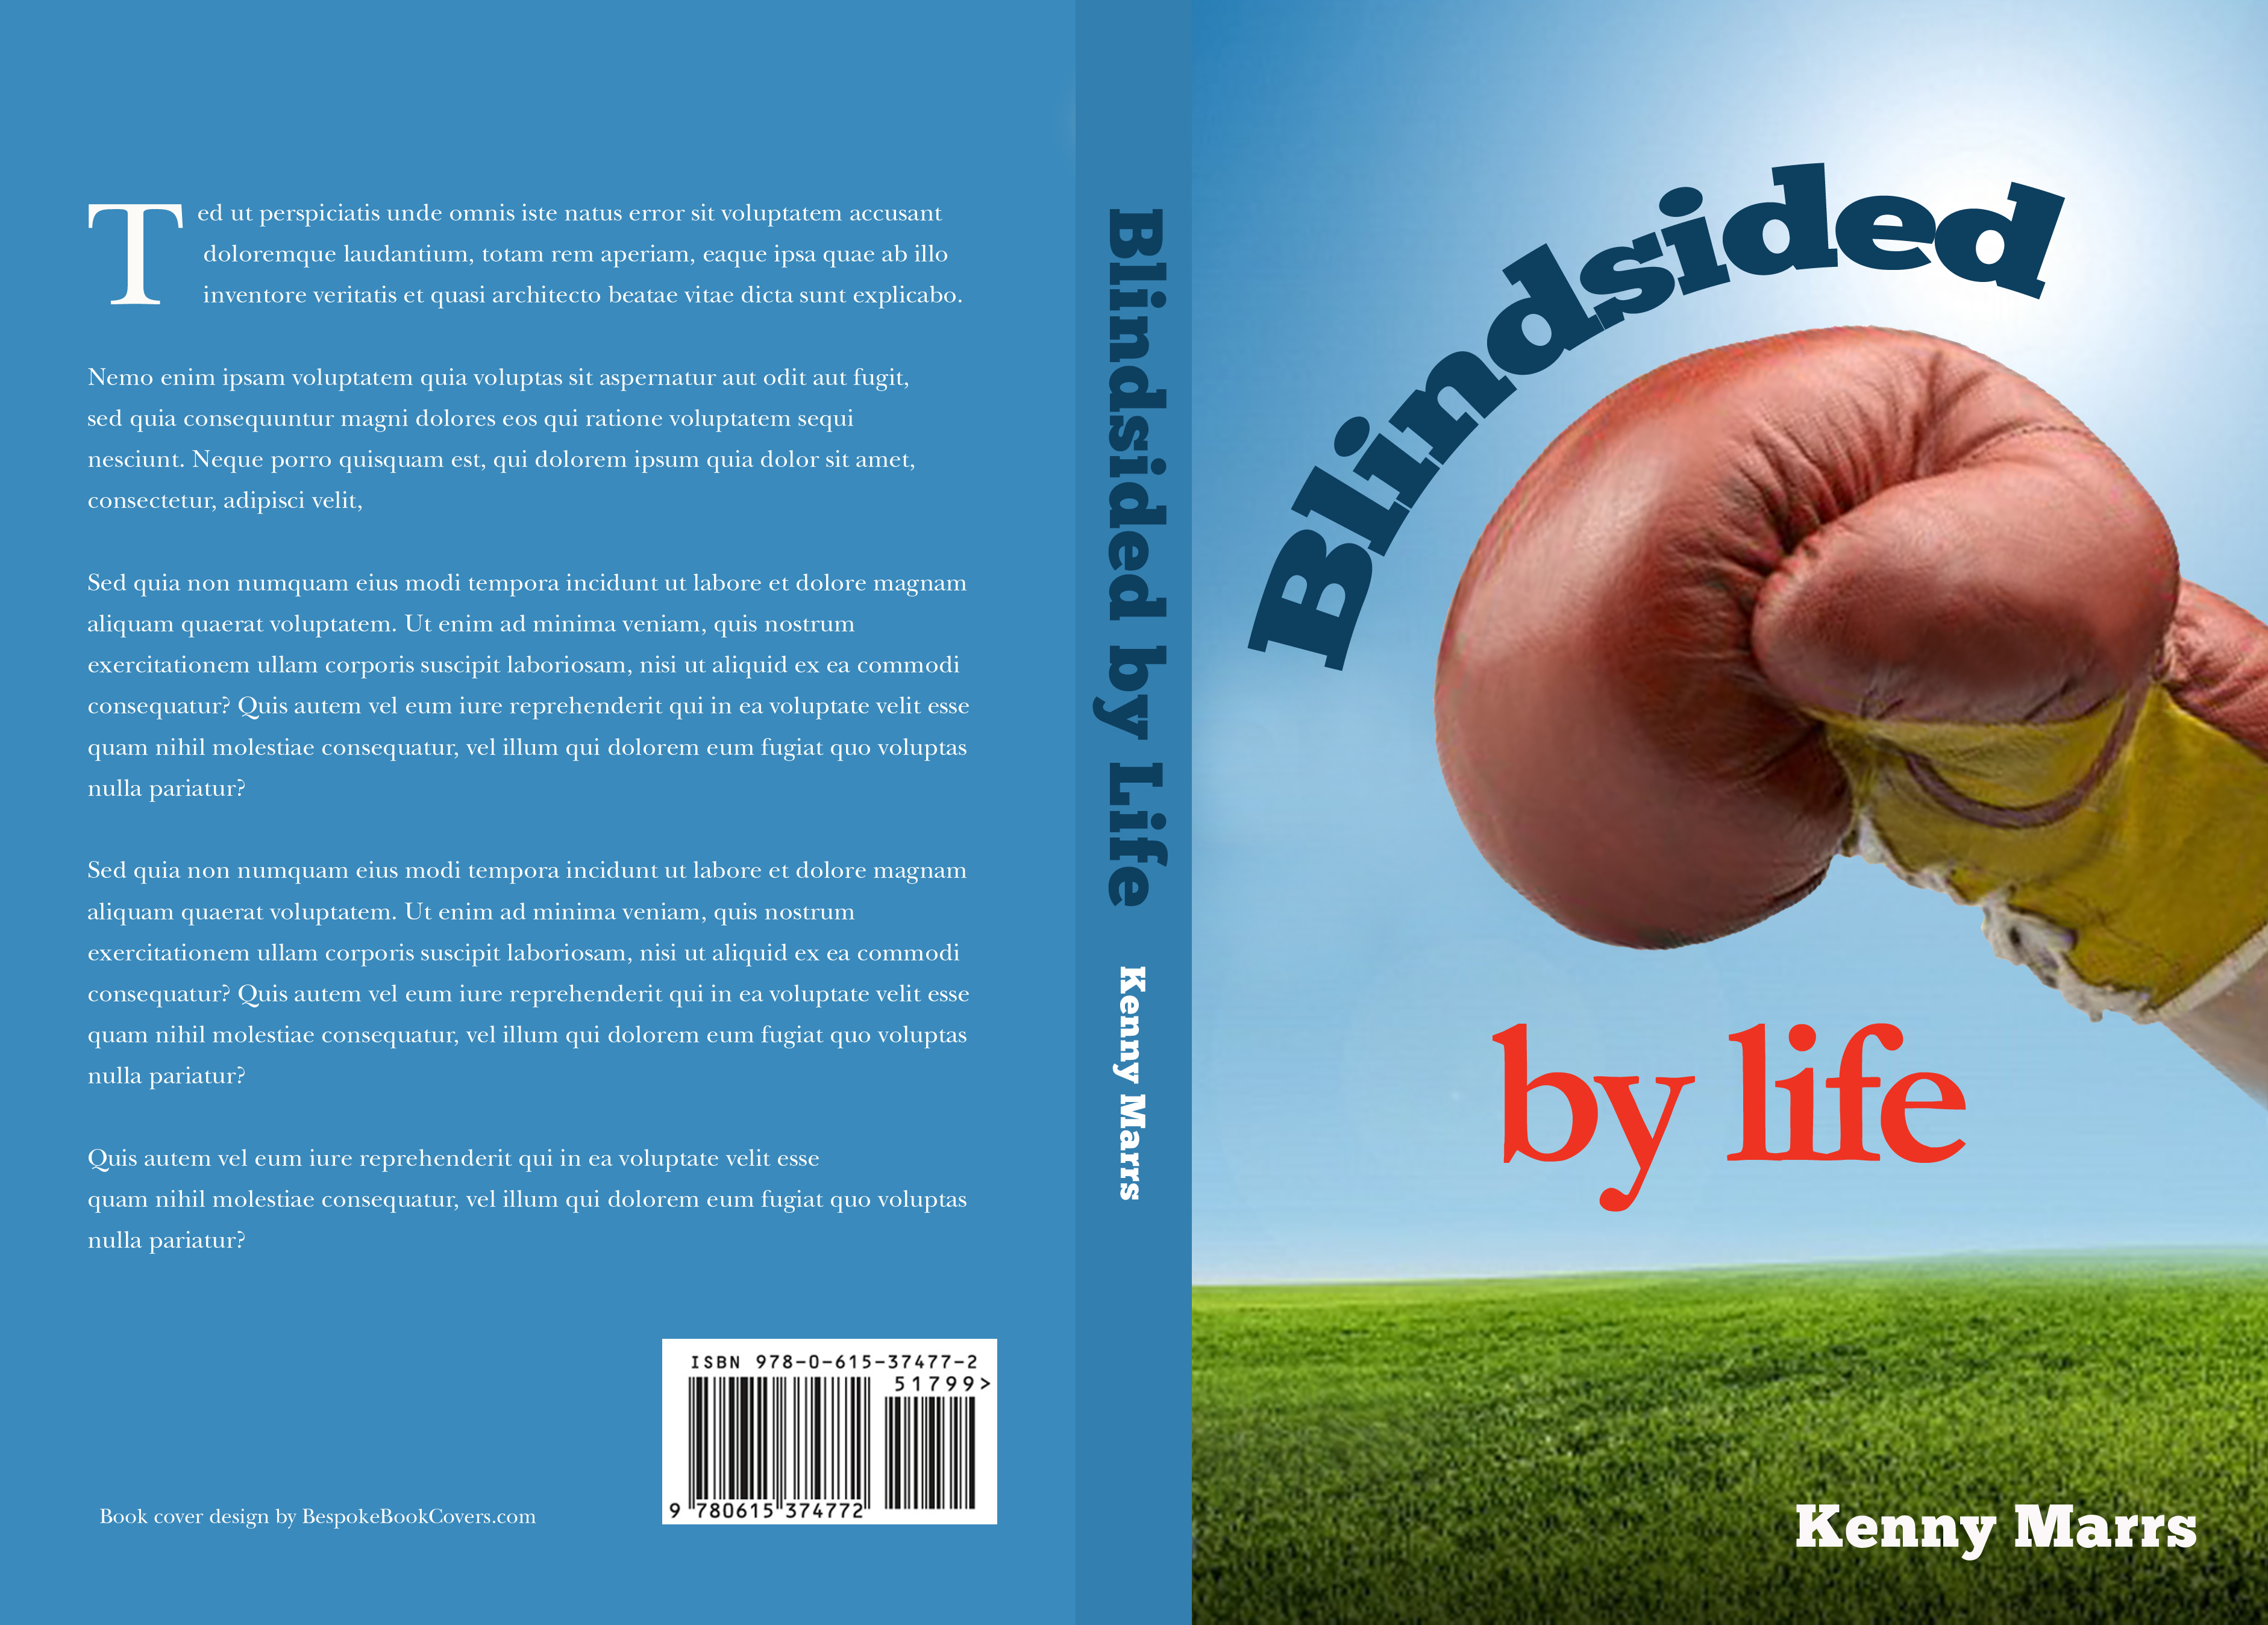 blindsided by life book cover